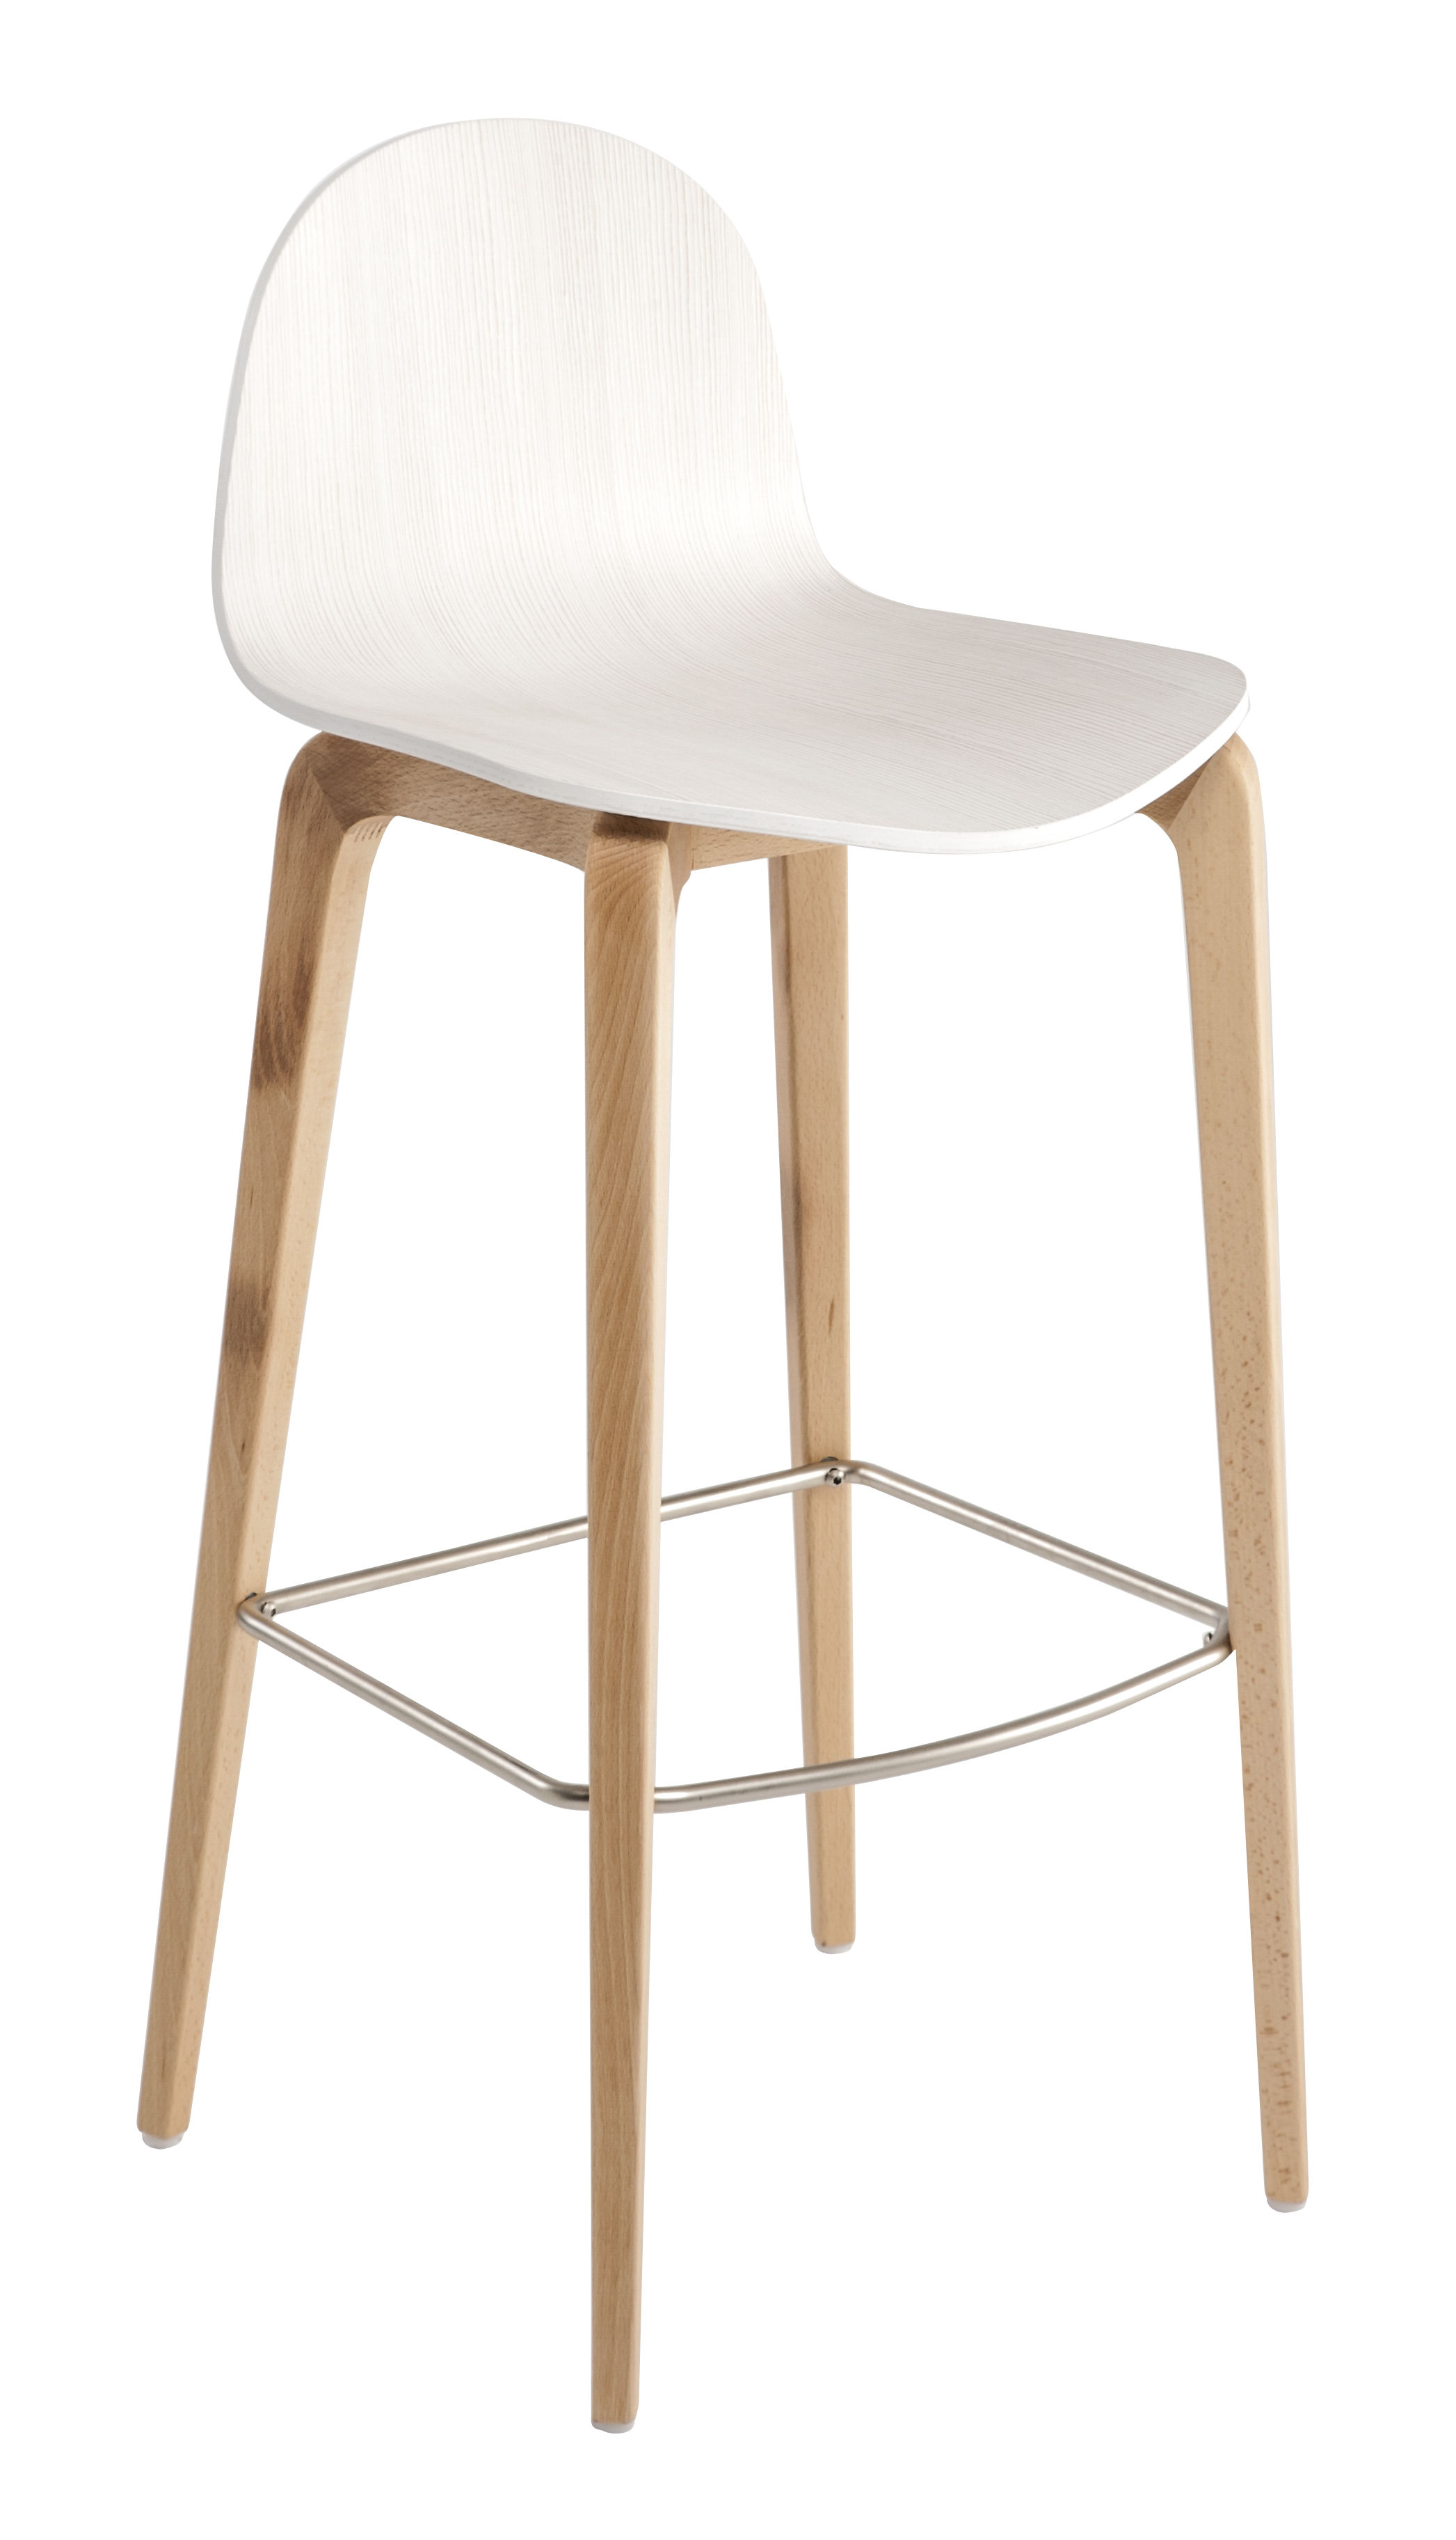 tabouret de bar bob h 74 cm bois blanc bois ondarreta. Black Bedroom Furniture Sets. Home Design Ideas